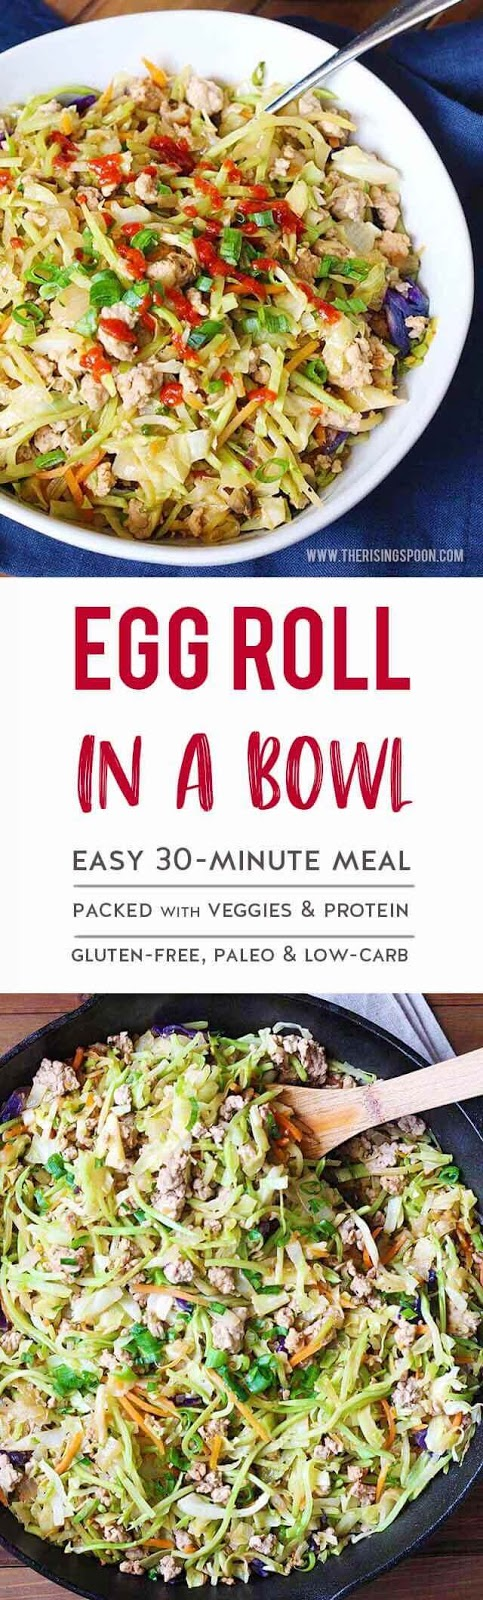 Egg Roll in a Bowl is an easy 30-minute stir-fry meal packed with simple, fresh ingredients and inexpensive pantry staples like cabbage, carrot, broccoli, ground pork, garlic, onion, and tamari or soy sauce. Serve it on a busy weeknight for a fast fresh dinner that everyone will love! (paleo, low-carb & gluten-free)